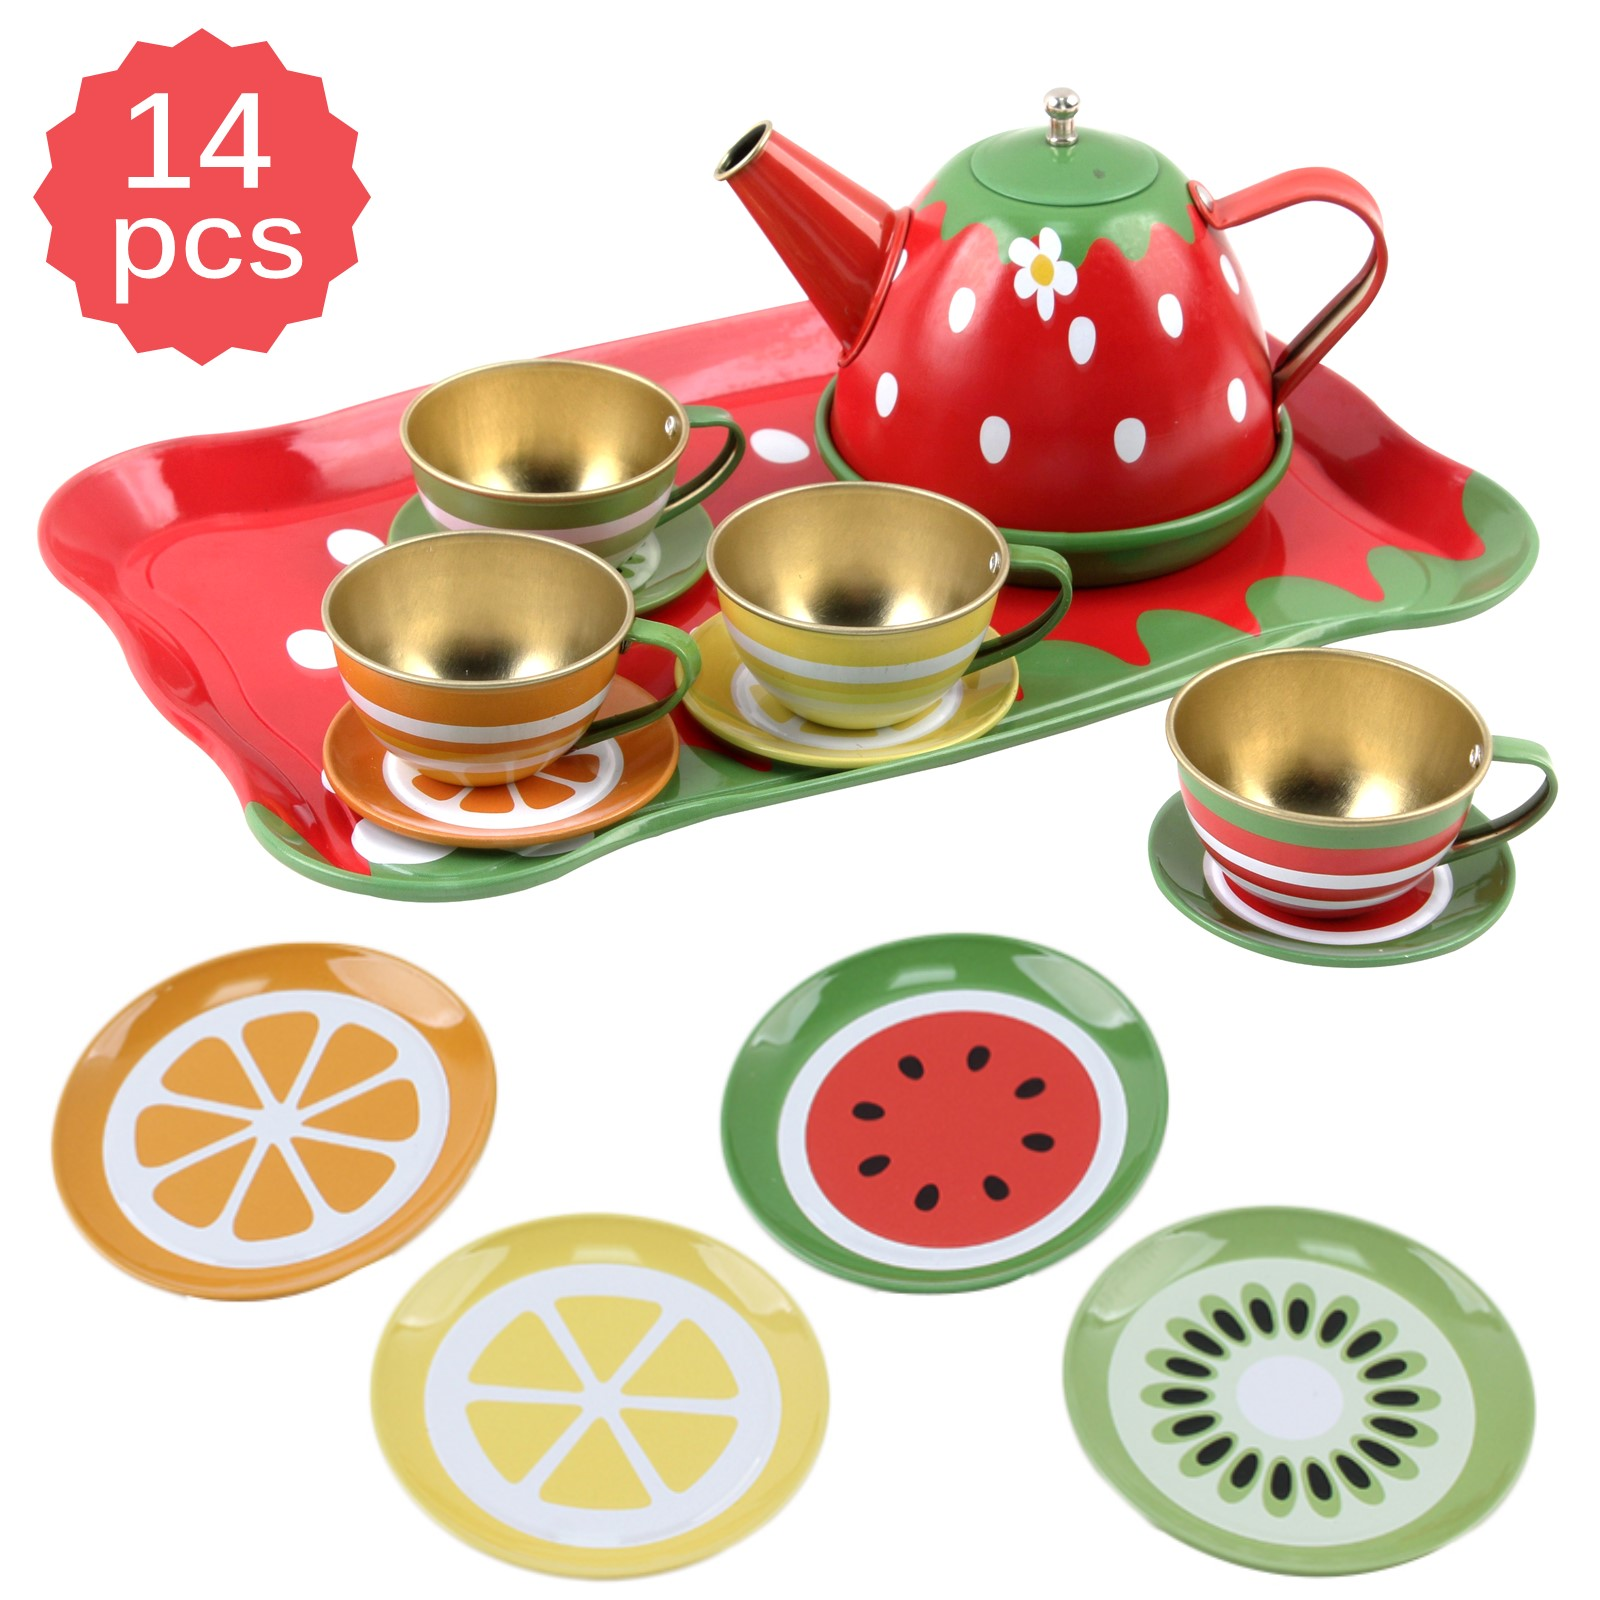 39 Pieces Tea Set for Little Girls Age 3,4,5,6|Pretend Play for Toddlers